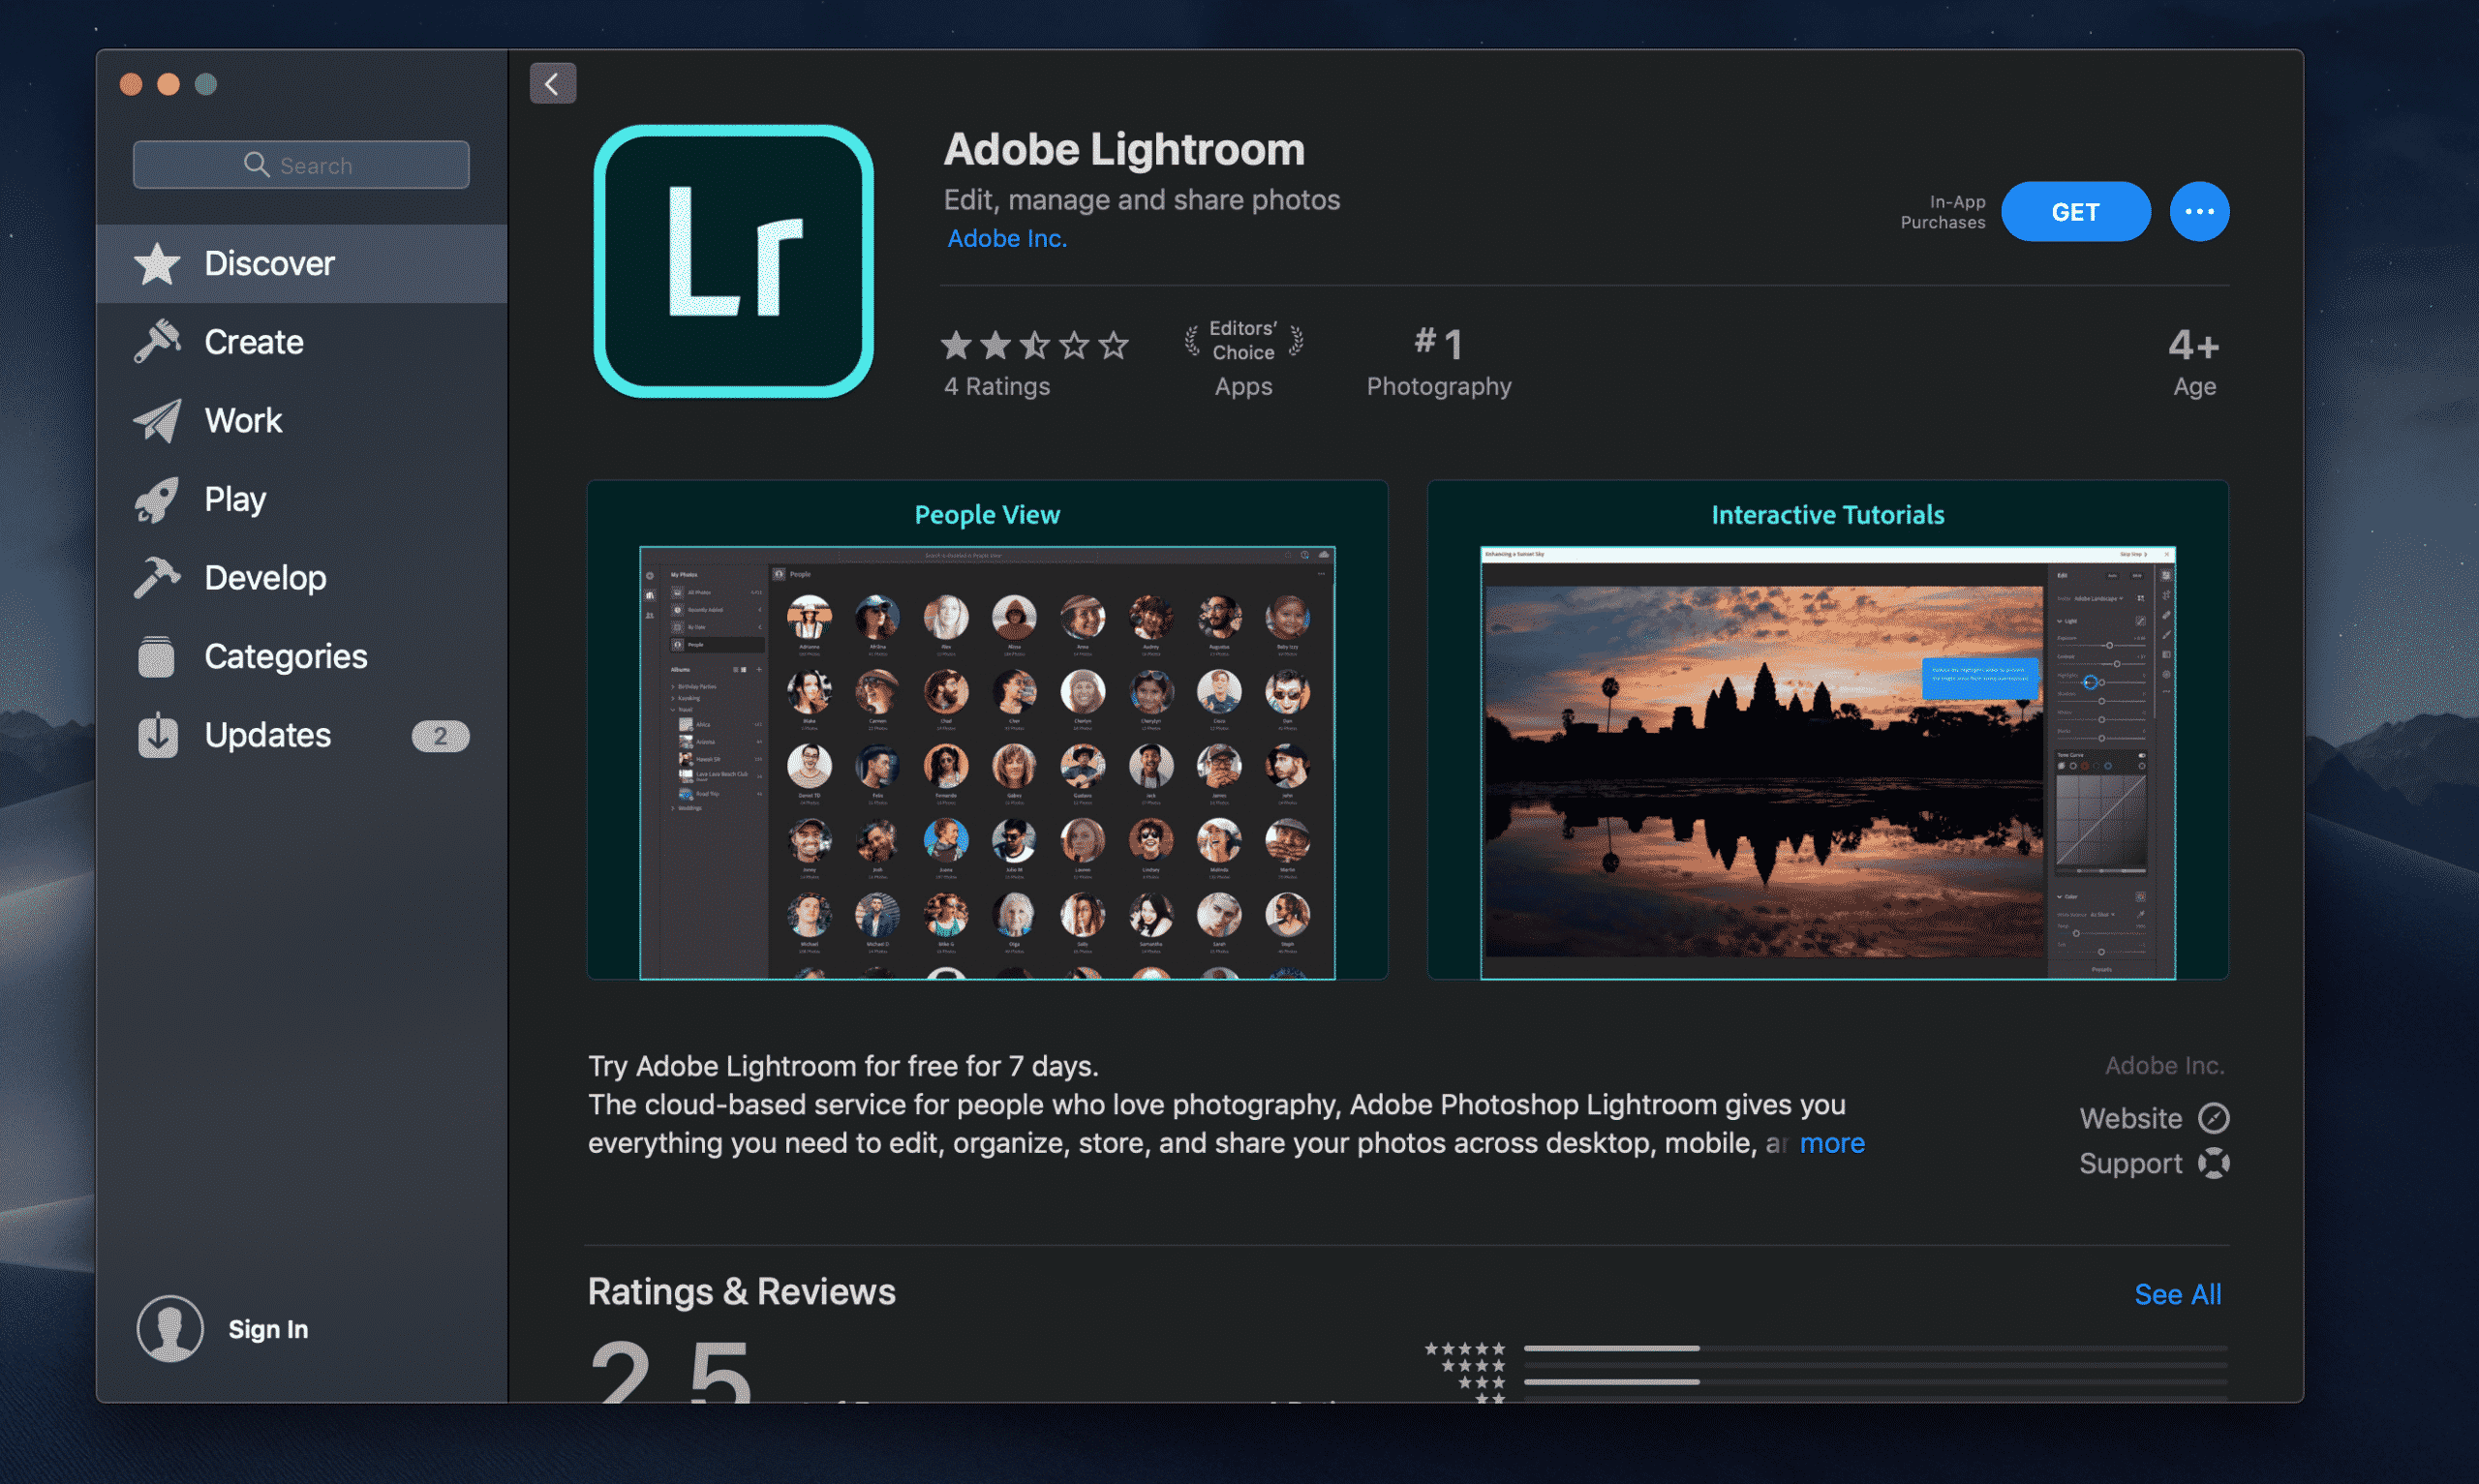 Adobe Lightroom Mac